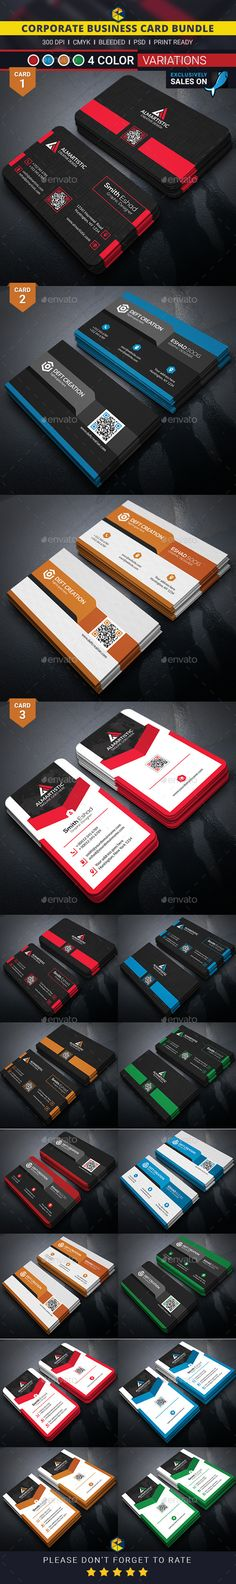 100 best design ideas business cards images on pinterest business buy corporate business card bundle by designereshad on graphicriver features easy customizable and editable 300 dpi cmyk print ready colourmoves